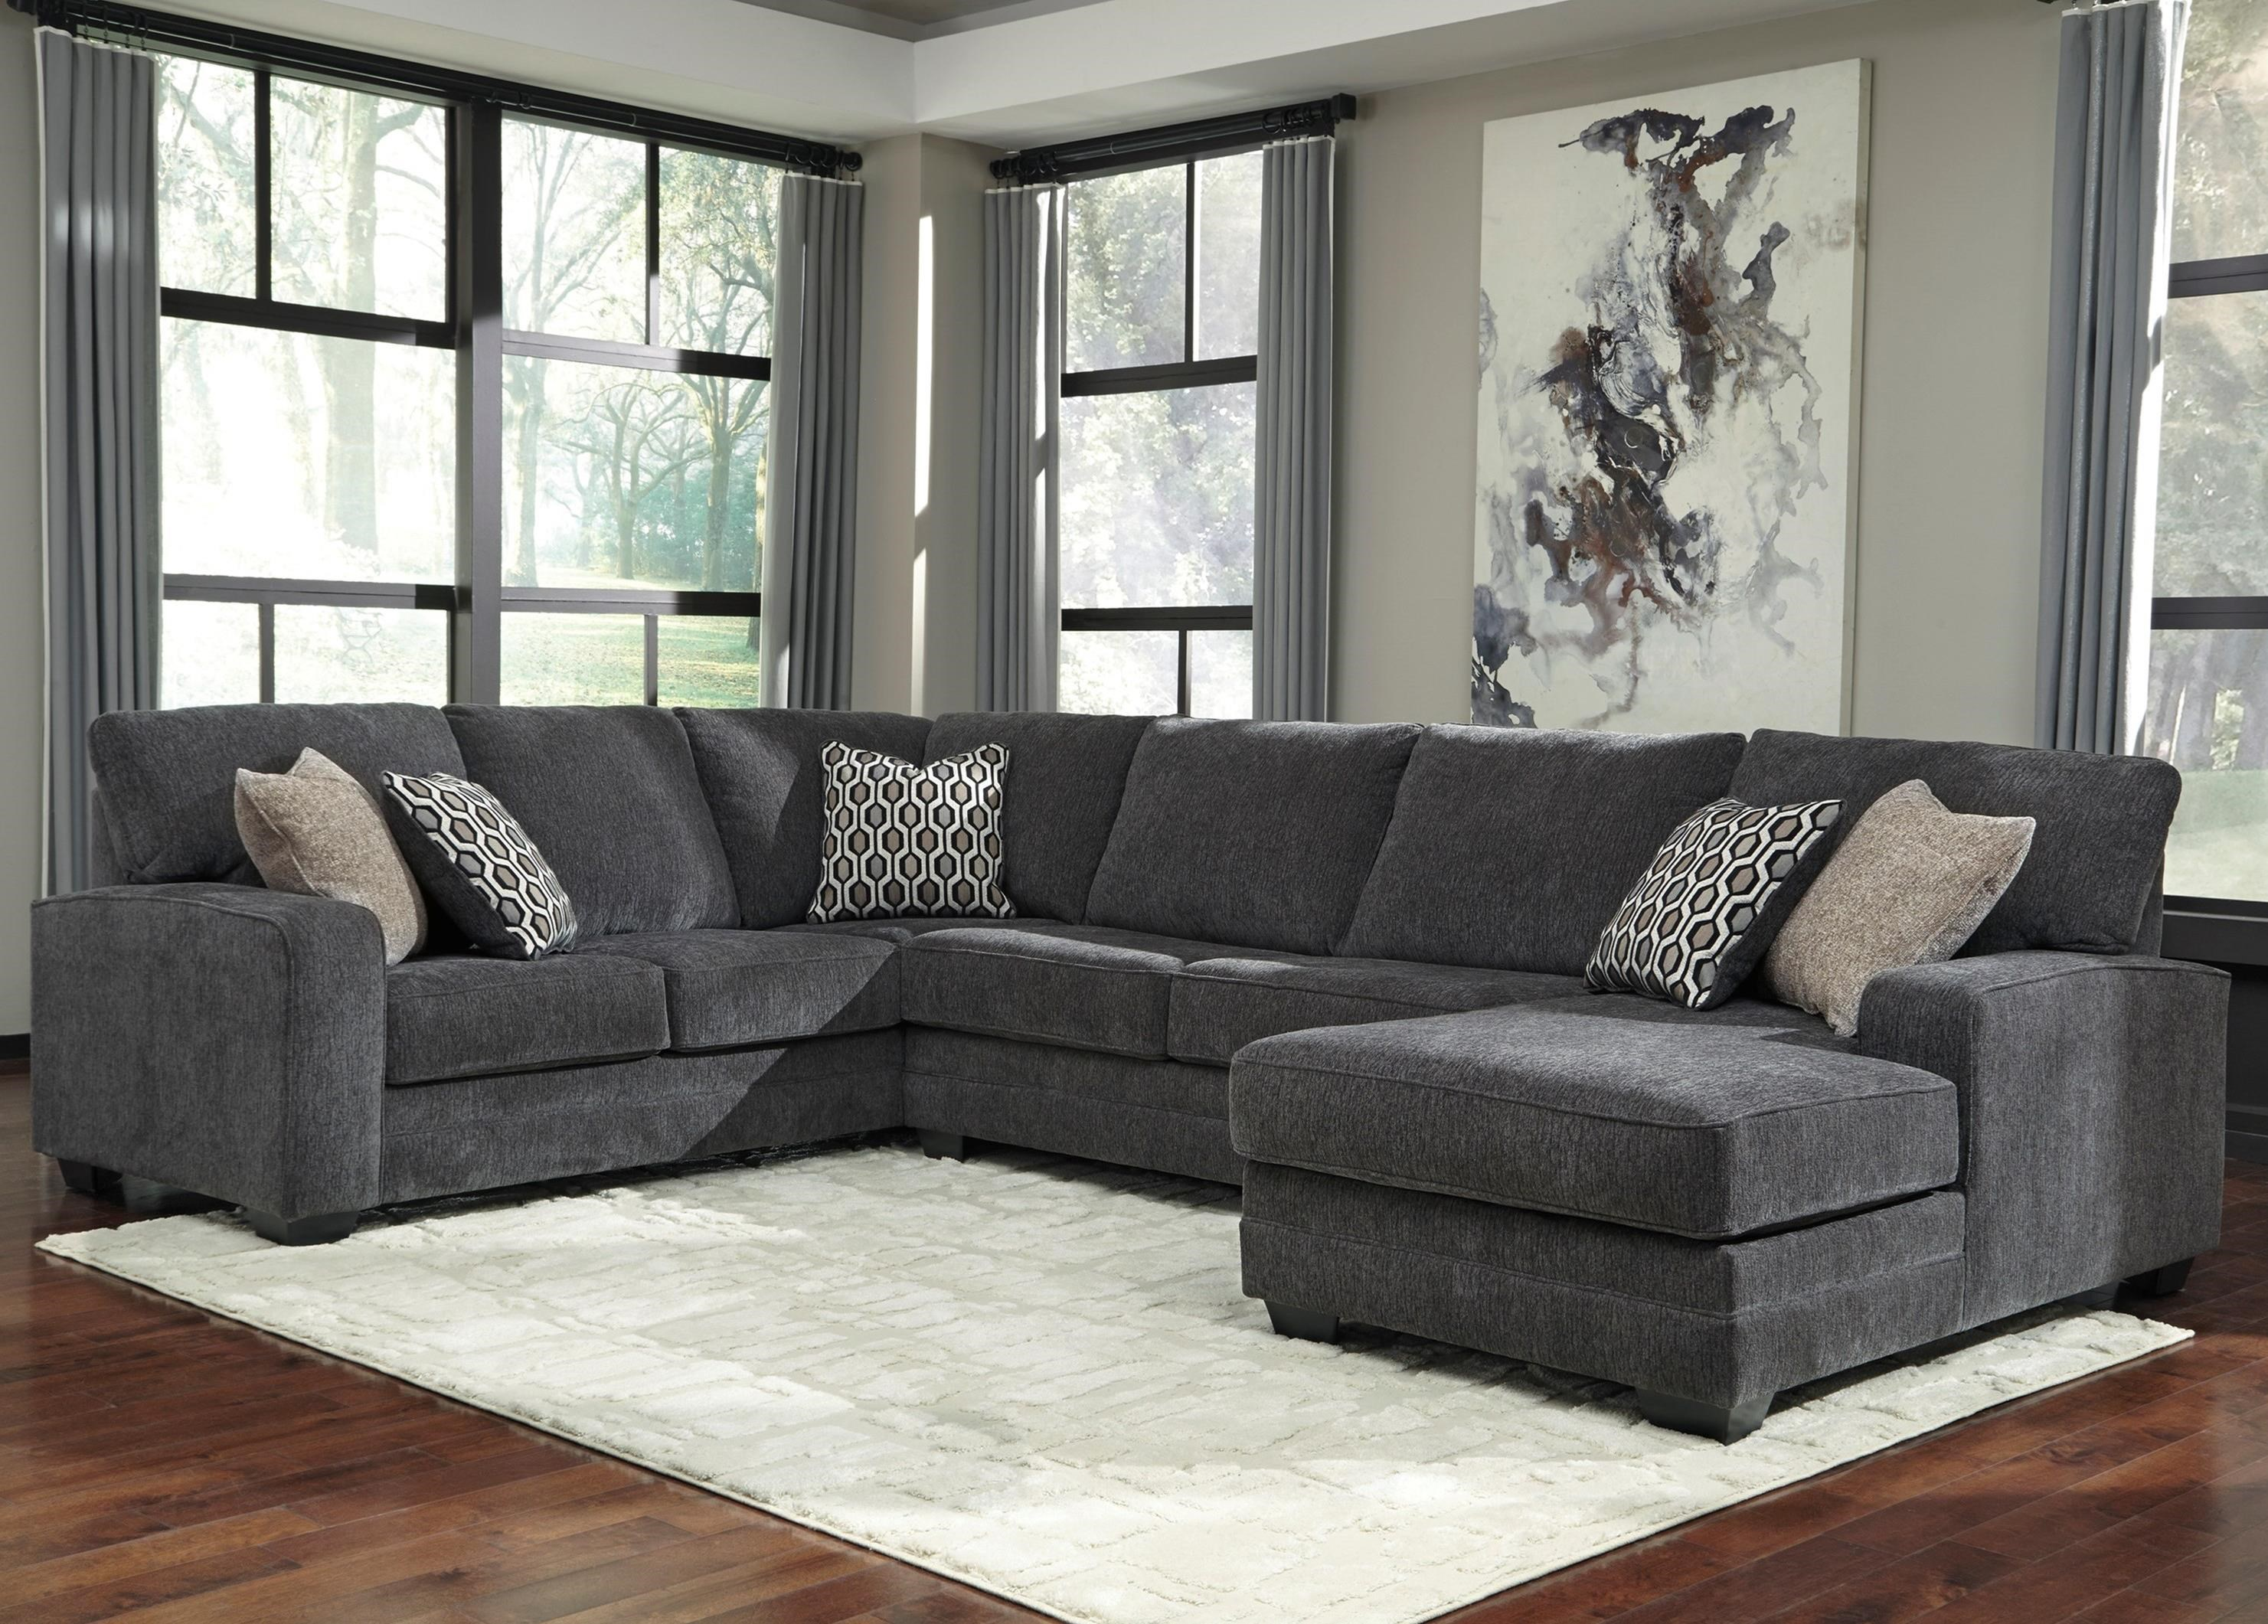 Tracling Sectional with Right Chaise by Benchcraft at Northeast Factory Direct